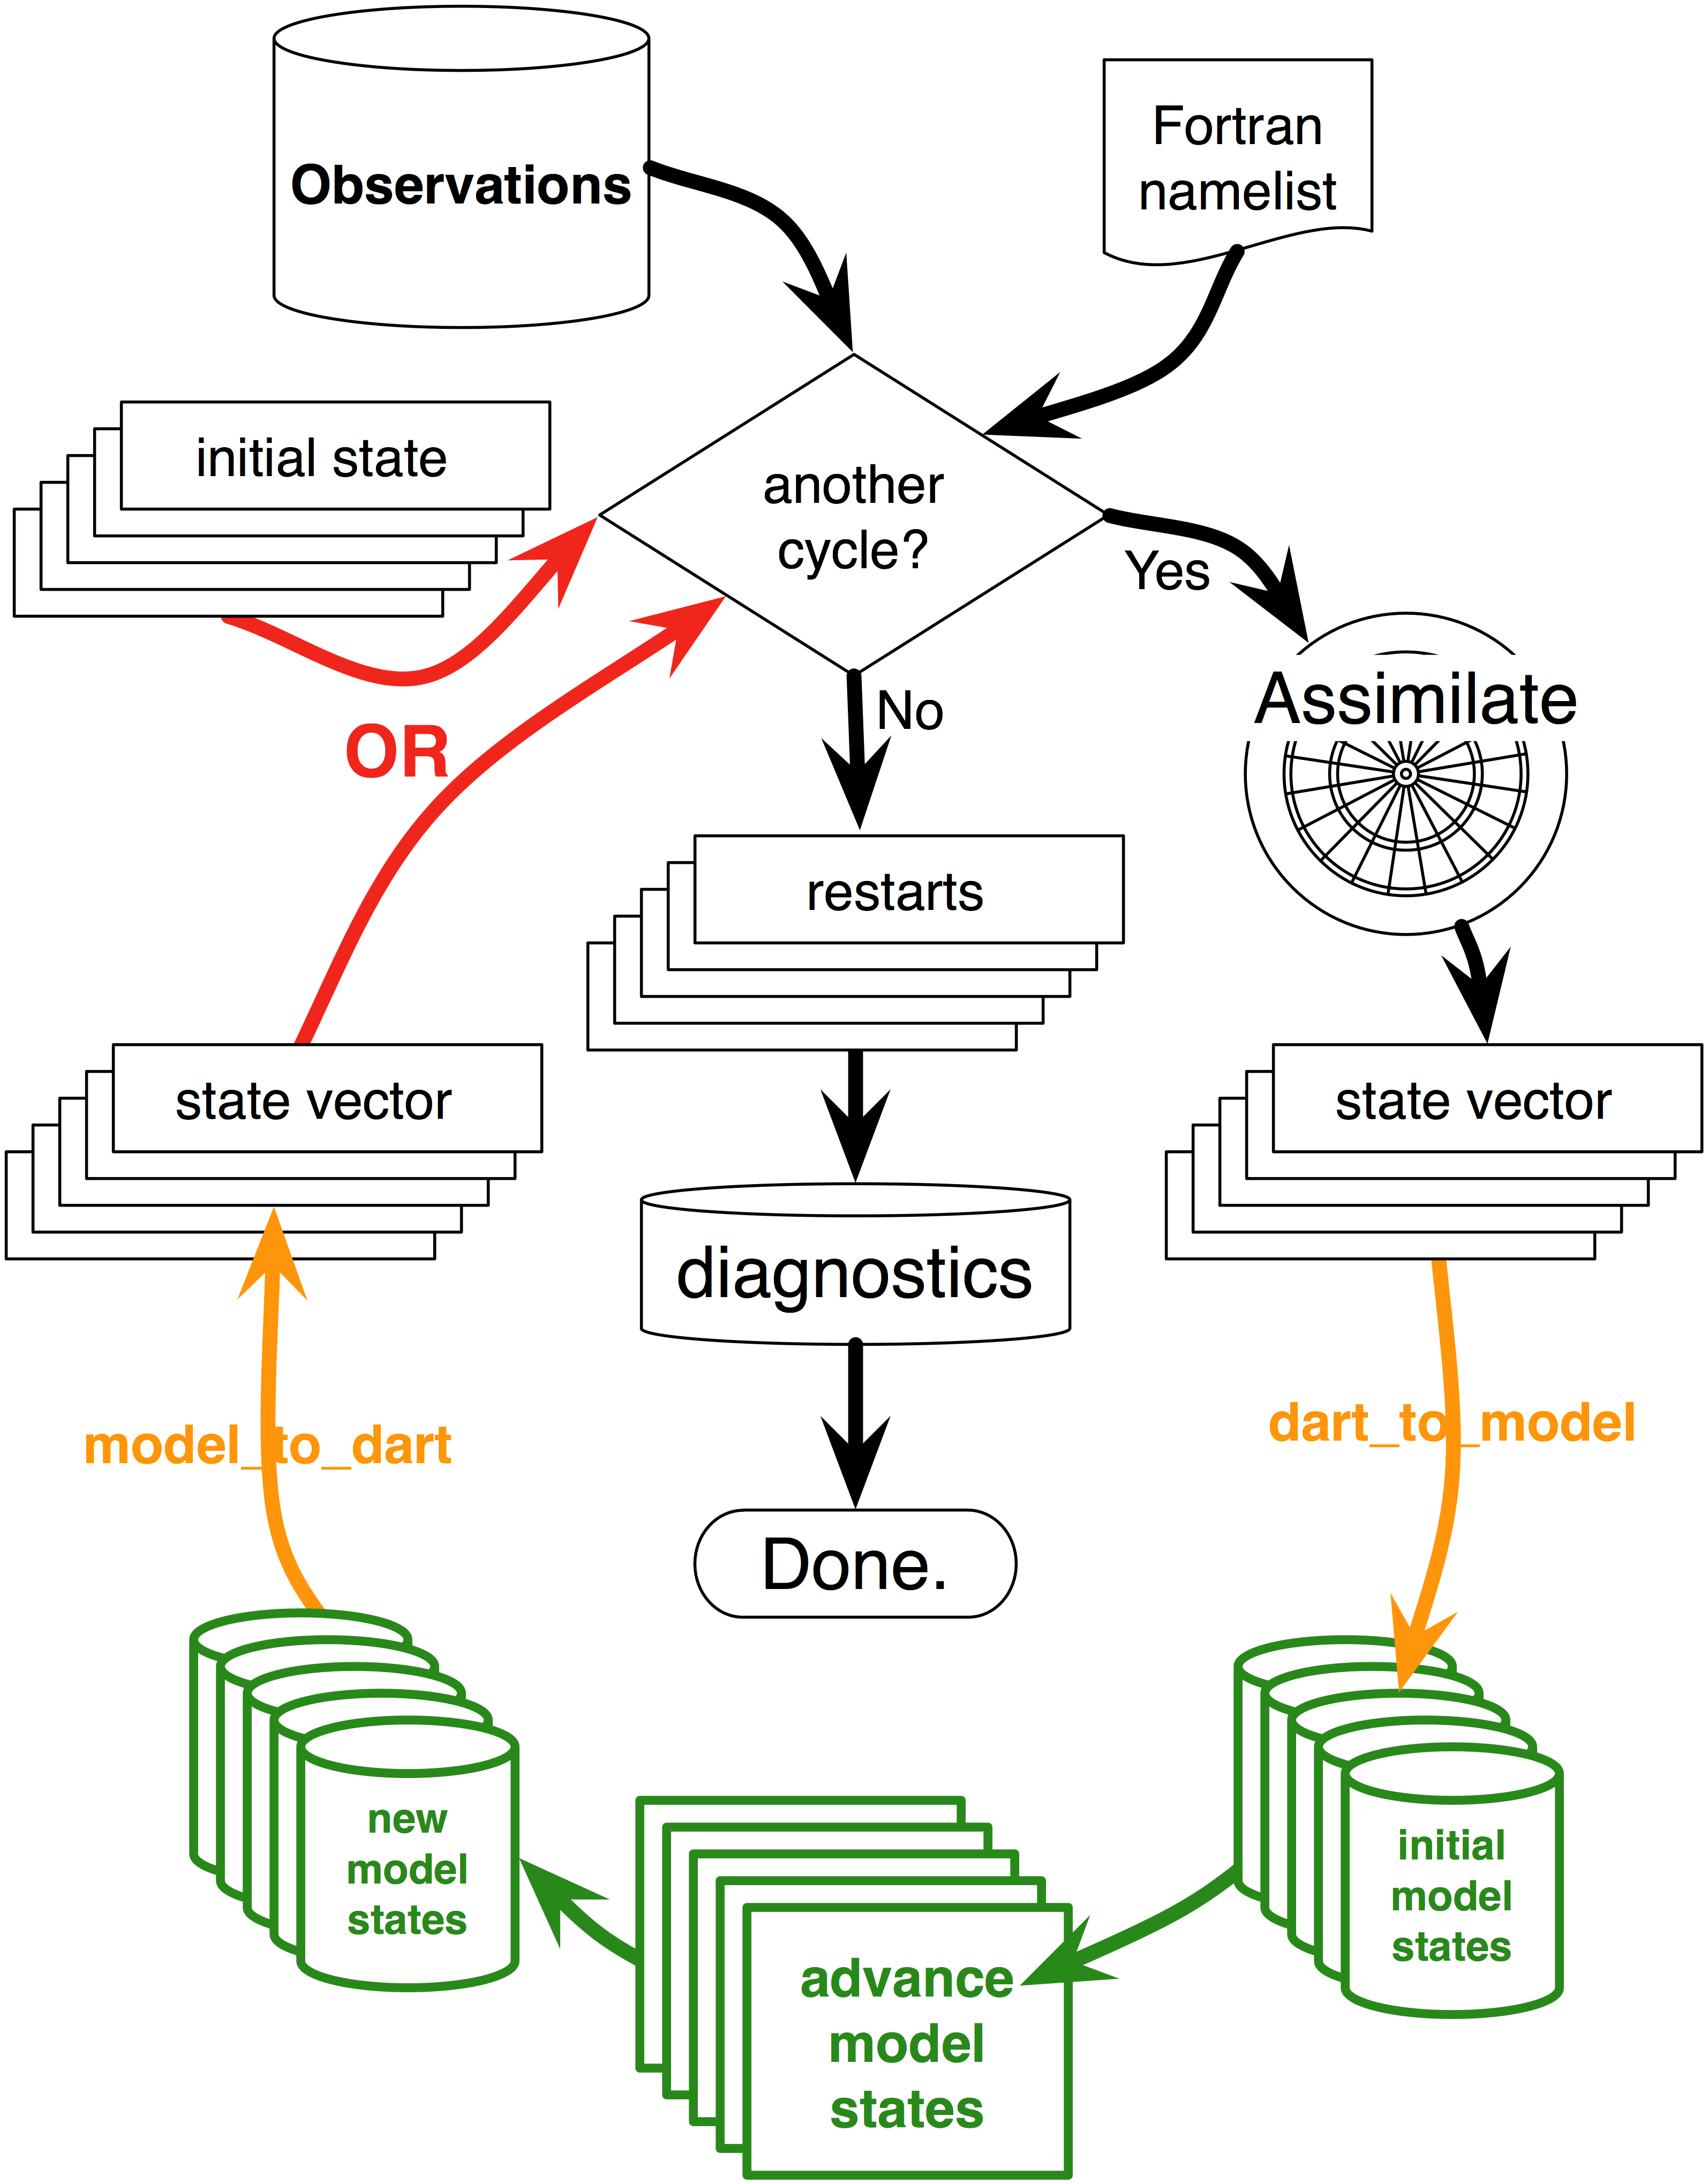 This is the DART view of ensemble data assimilation for models that run as separate executables. Starting at the top and working clockwise: Everything is driven by a Fortran namelist and the presence or absence of observations. A Fortran executable named 'filter' reads a namelist, an initial state for the ensemble, and a file containing observations and goes to work. Given the observations and an initial state, 'filter' assimilates the observations and then determines how far to advance the model (using information from the namelist and the observation file). 'filter' forks a shell script to the system and it is this shell script that is responsible for three things: 1) for converting the DART state vectors and 'advance_to_time' to the format required by the underlying model, 2) advancing the model, and 3) converting the model output into a form suitable for 'filter'. [The script is responsible for the lower portion of the diagram.] The model advances each ensemble member (either in turn or all-at-once) and the model output is converted to the input format expected by 'filter'. The shell script finishes and signals 'filter' to continue. We are now back at the beginning and the cycle continues as long as there are observations to assimilate or until the control information in the Fortran namelist is met. When that happens, a set of restart files is written (suitable to continue an experiment with more observations) and diagnostic files are written. These diagnostic files allow for the exploration of the assimilation before and after each assimilation step and for exploration of the assimilation in 'observation space'; each real observation is paired with the estimates of the observation from all of the ensemble members (if desired). Minimally, the ensemble mean estimate of the observation and the ensemble spread of the estimates is recorded. Credit: NCAR